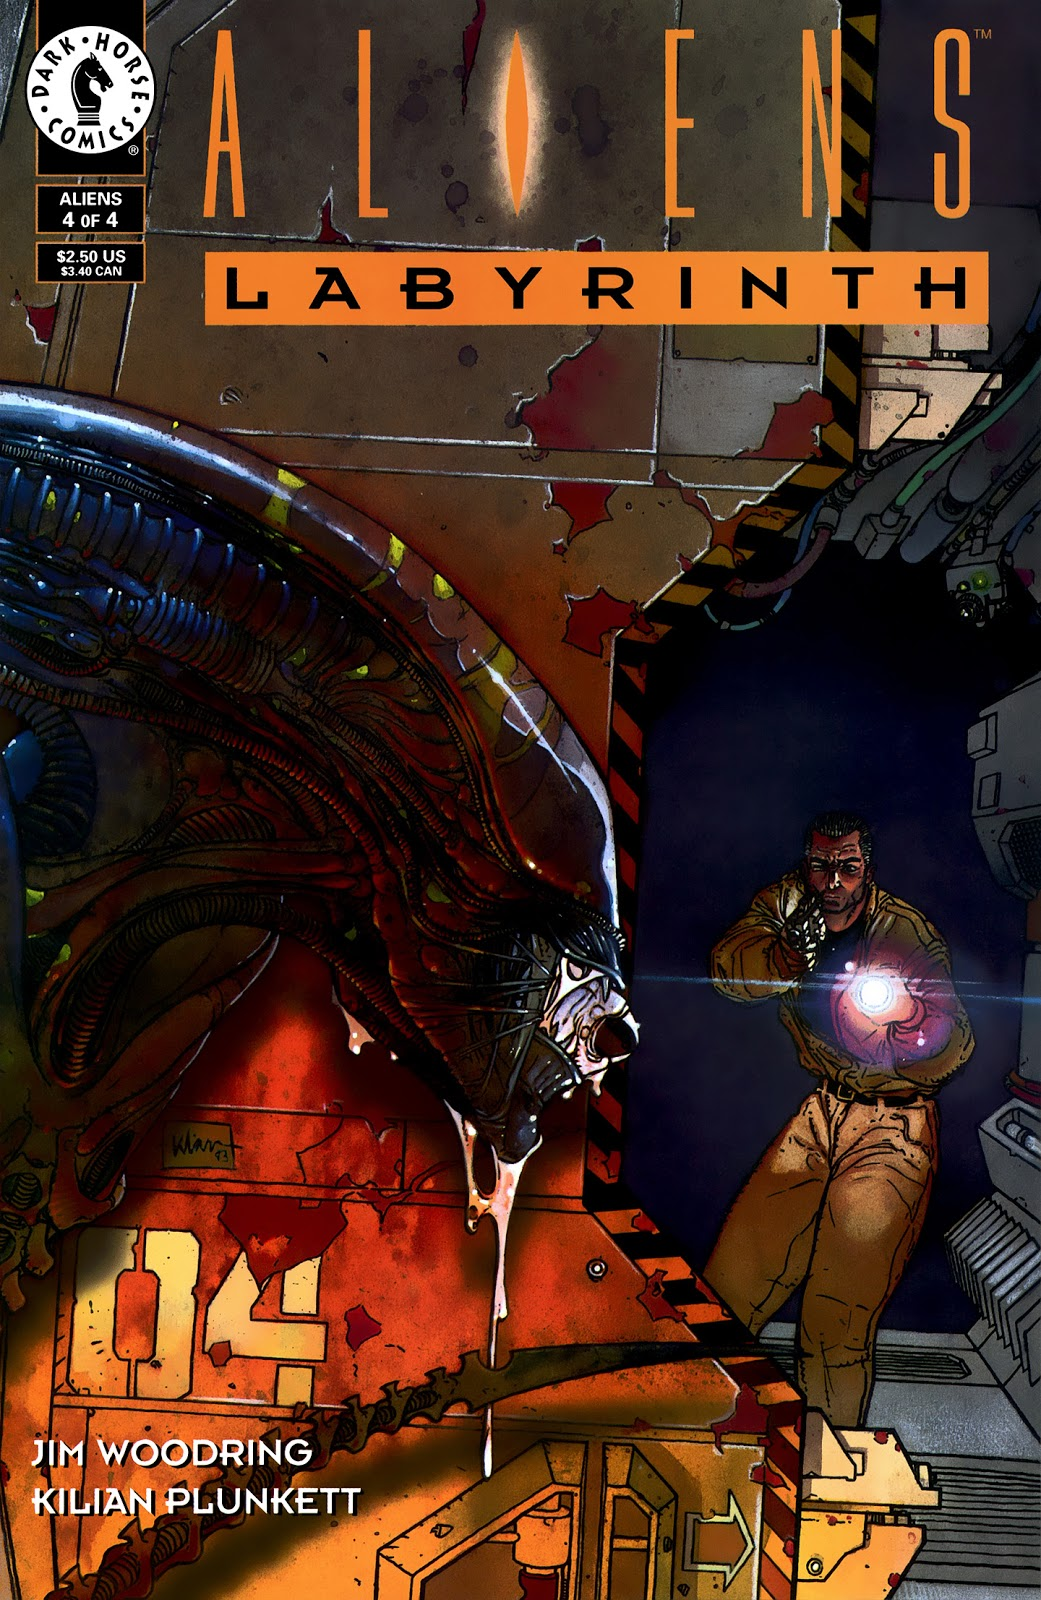 File:180px-367330-21239-128542-1-aliens-labyrinth super.jpg